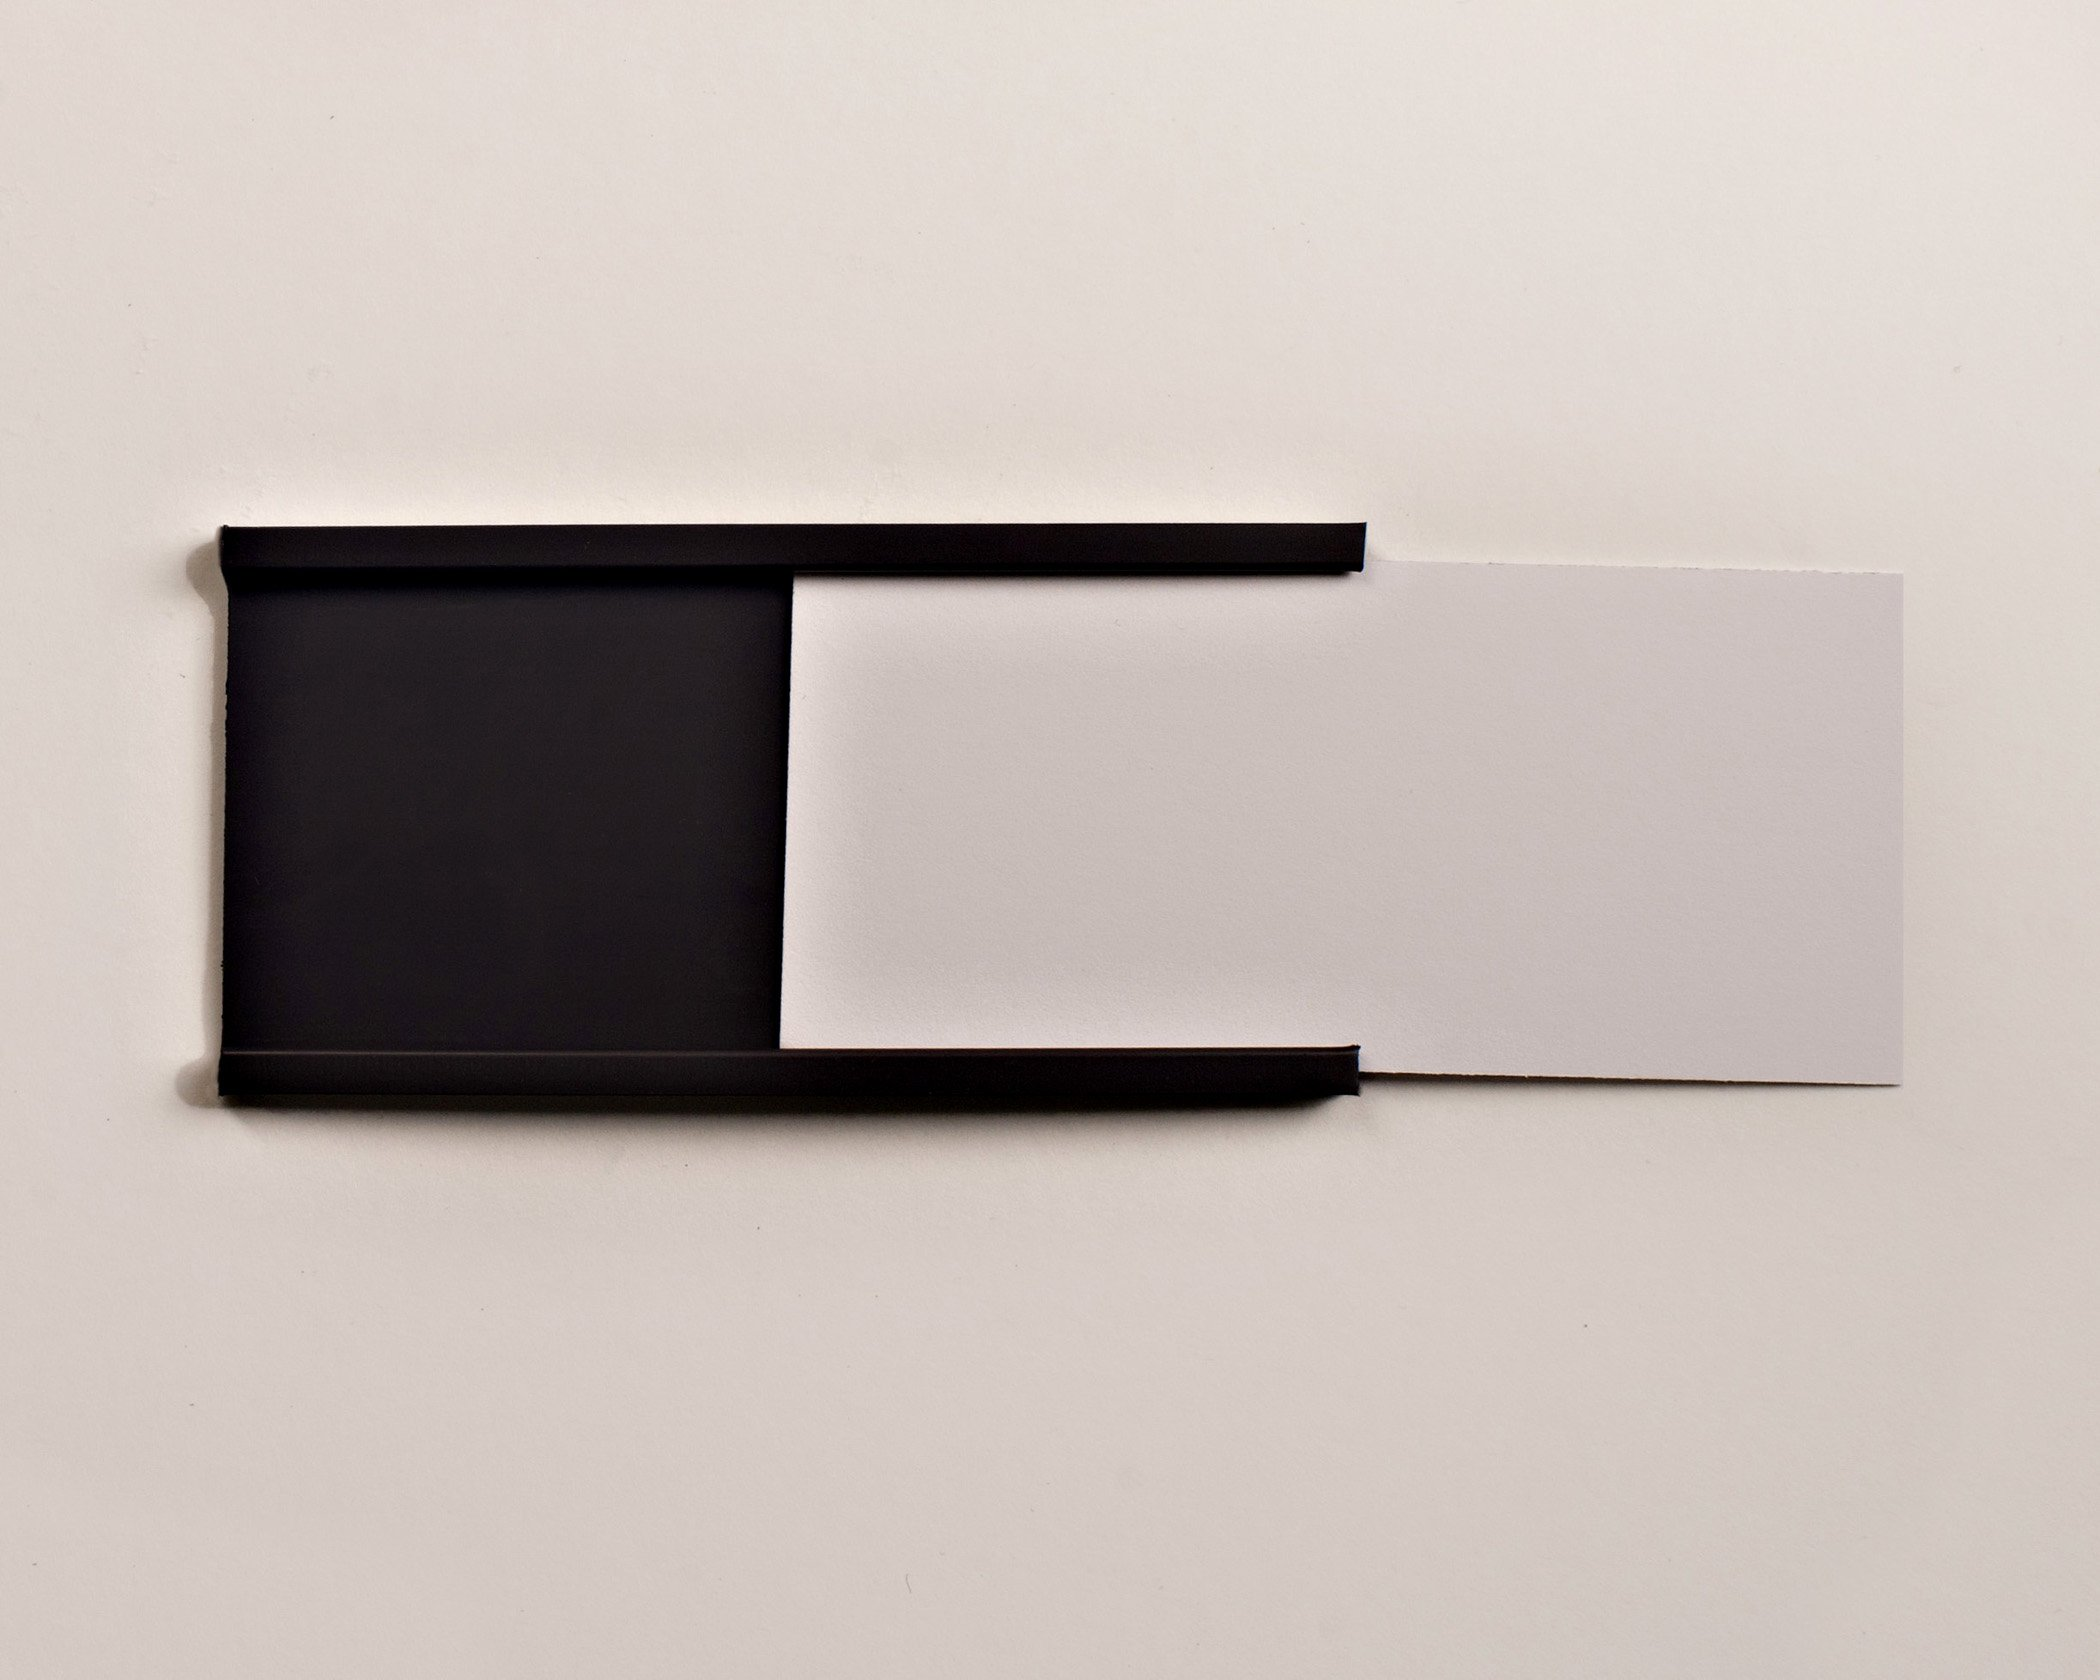 2.16'' x 3'' Magnetic Data Cardholder C-Channel Shelf Labels - 25 Pack with 25 Precut Cards